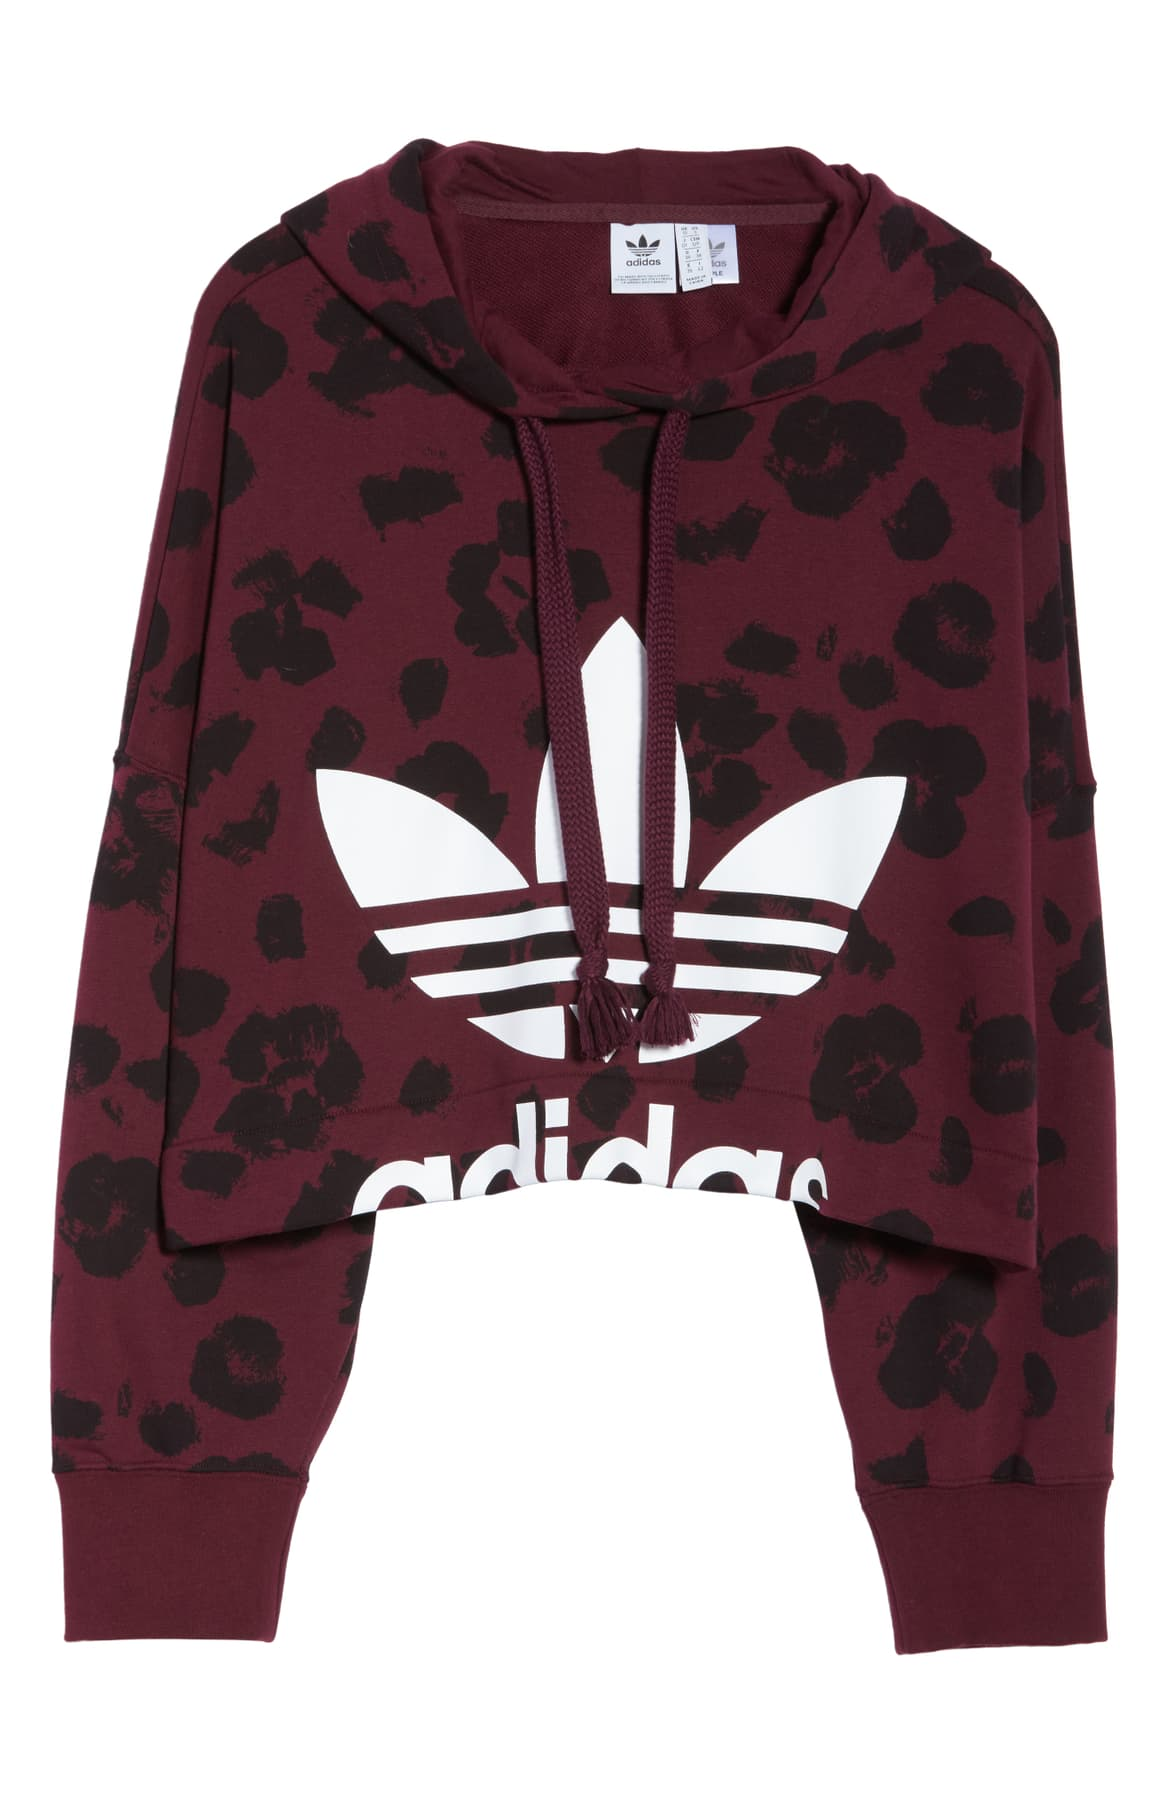 "<p>Sporty, feminine and whimsical, this French terry cropped hoodie is cut with drapey dolman sleeves and patterned in an abstract floral print and a cutoff logo. $70.{&nbsp;}<a  href=""https://shop.nordstrom.com/s/adidas-originals-bellista-allover-print-crop-hoodie/5221467/full?origin=keywordsearch-personalizedsort&breadcrumb=Home%2FAll%20Results&color=maroon%2F%20black"" target=""_blank"" title=""https://shop.nordstrom.com/s/adidas-originals-bellista-allover-print-crop-hoodie/5221467/full?origin=keywordsearch-personalizedsort&breadcrumb=Home%2FAll%20Results&color=maroon%2F%20black"">Shop it</a>. (Image: Nordstrom){&nbsp;}</p>"